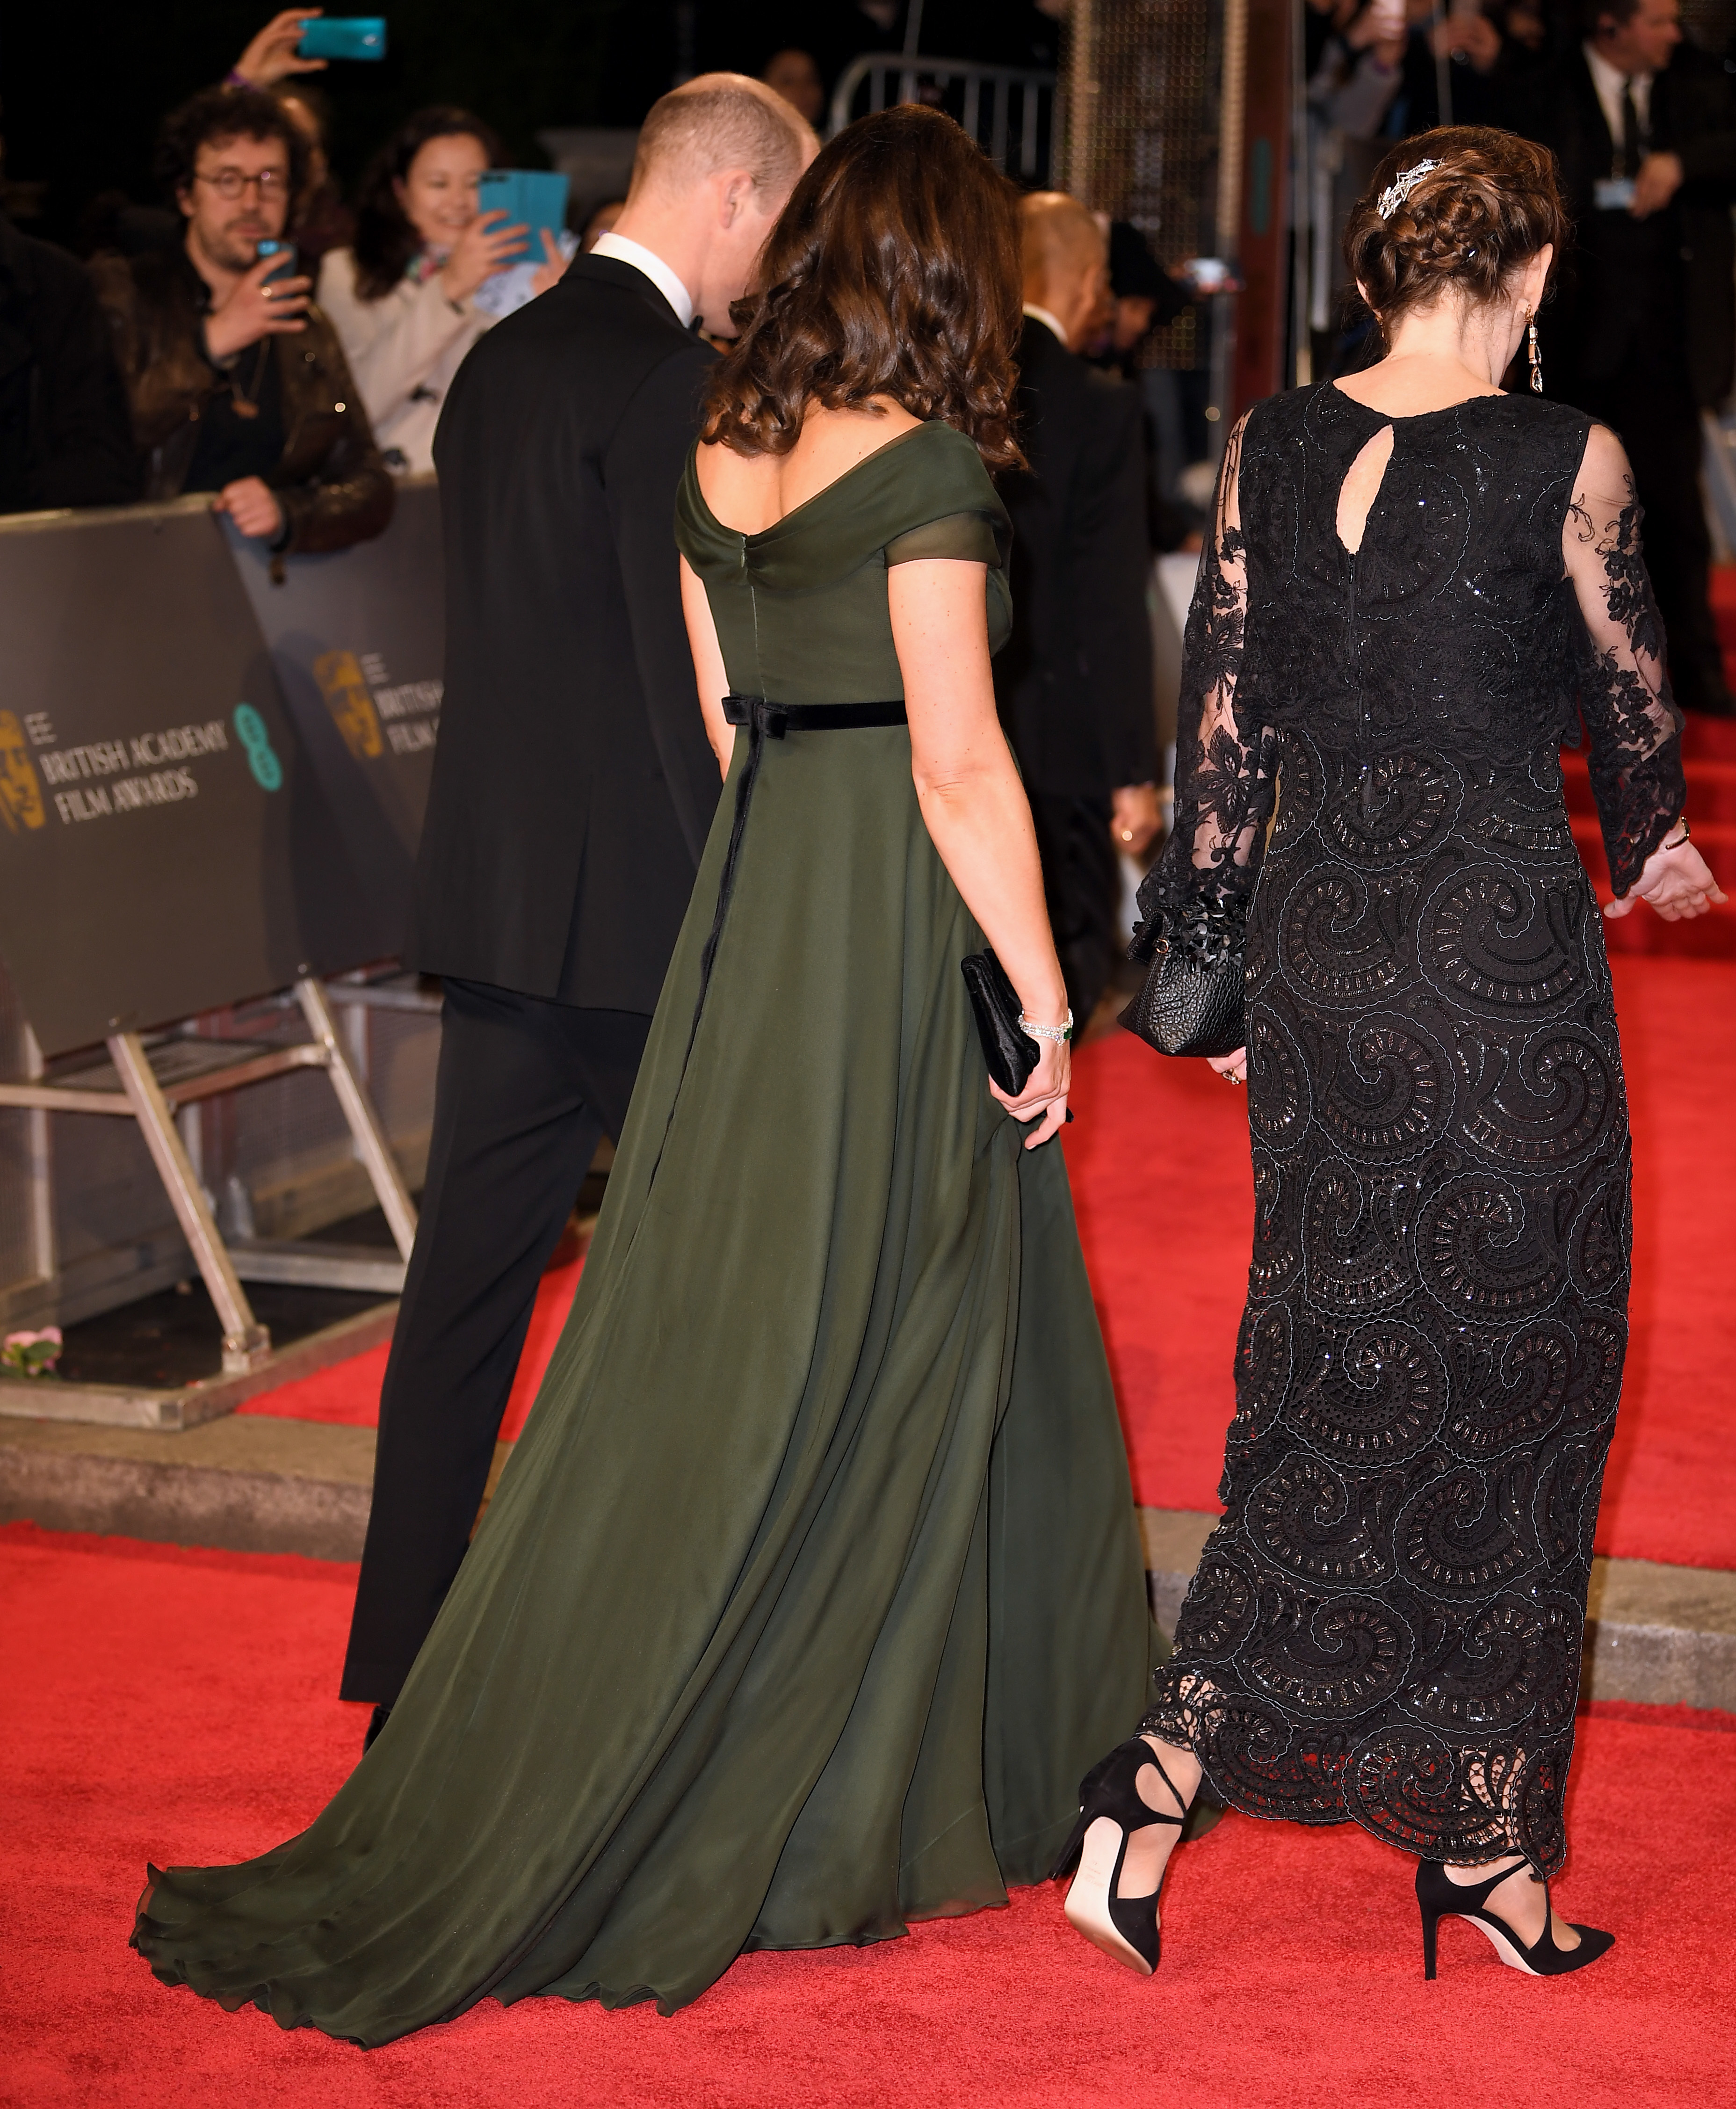 Prince William and Duchess Kate arrive at the 71st EE British Academy Film Awards at the Royal Albert Hall in London on Feb. 18, 2018.